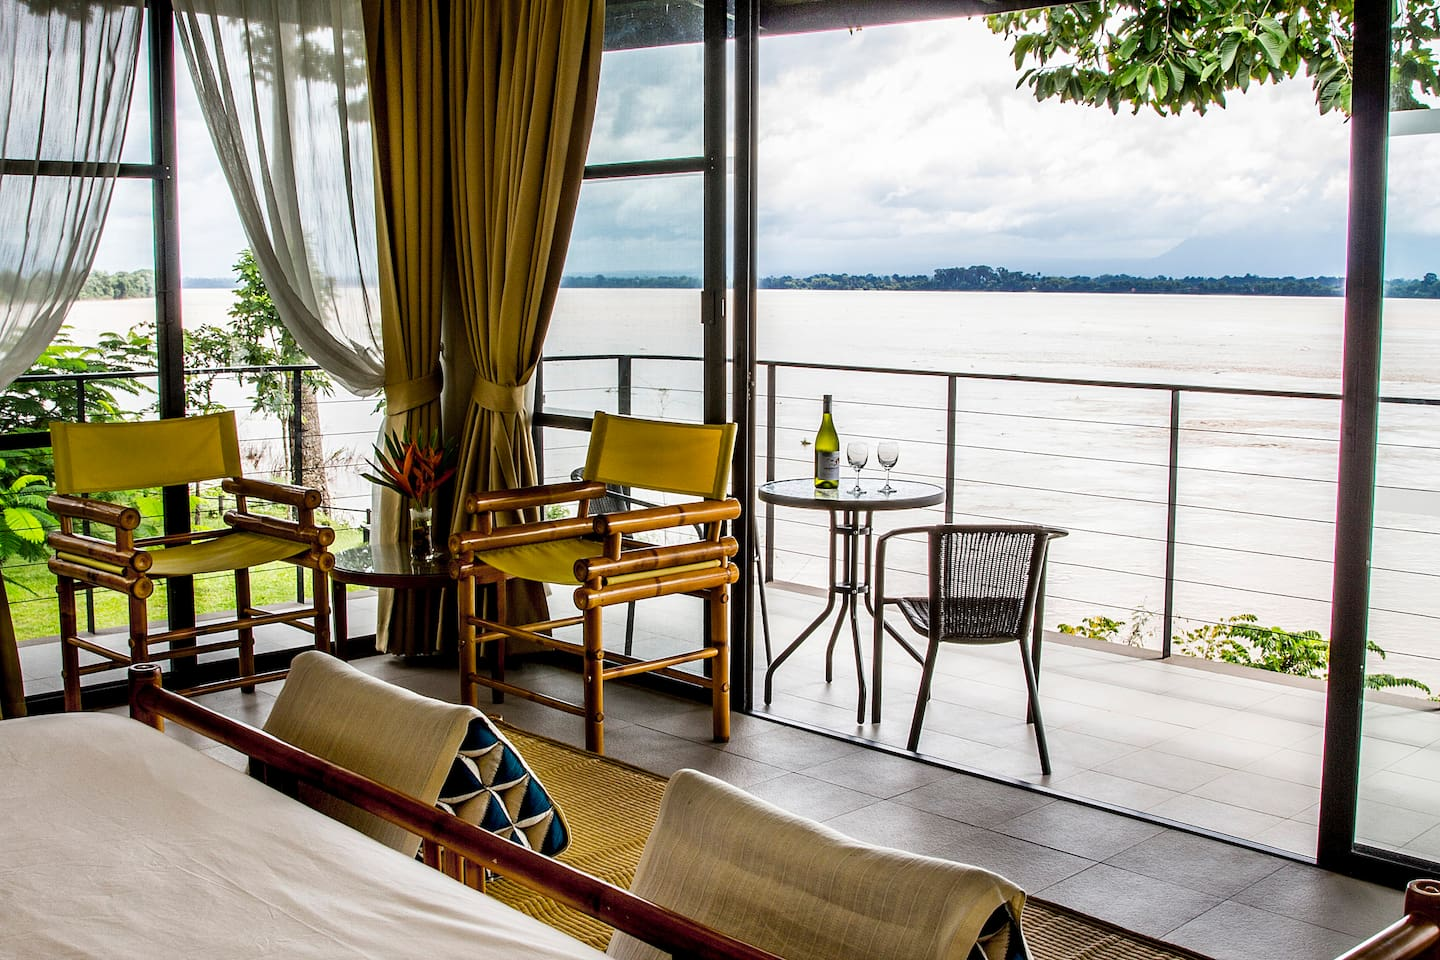 180 degree of Mekong River view